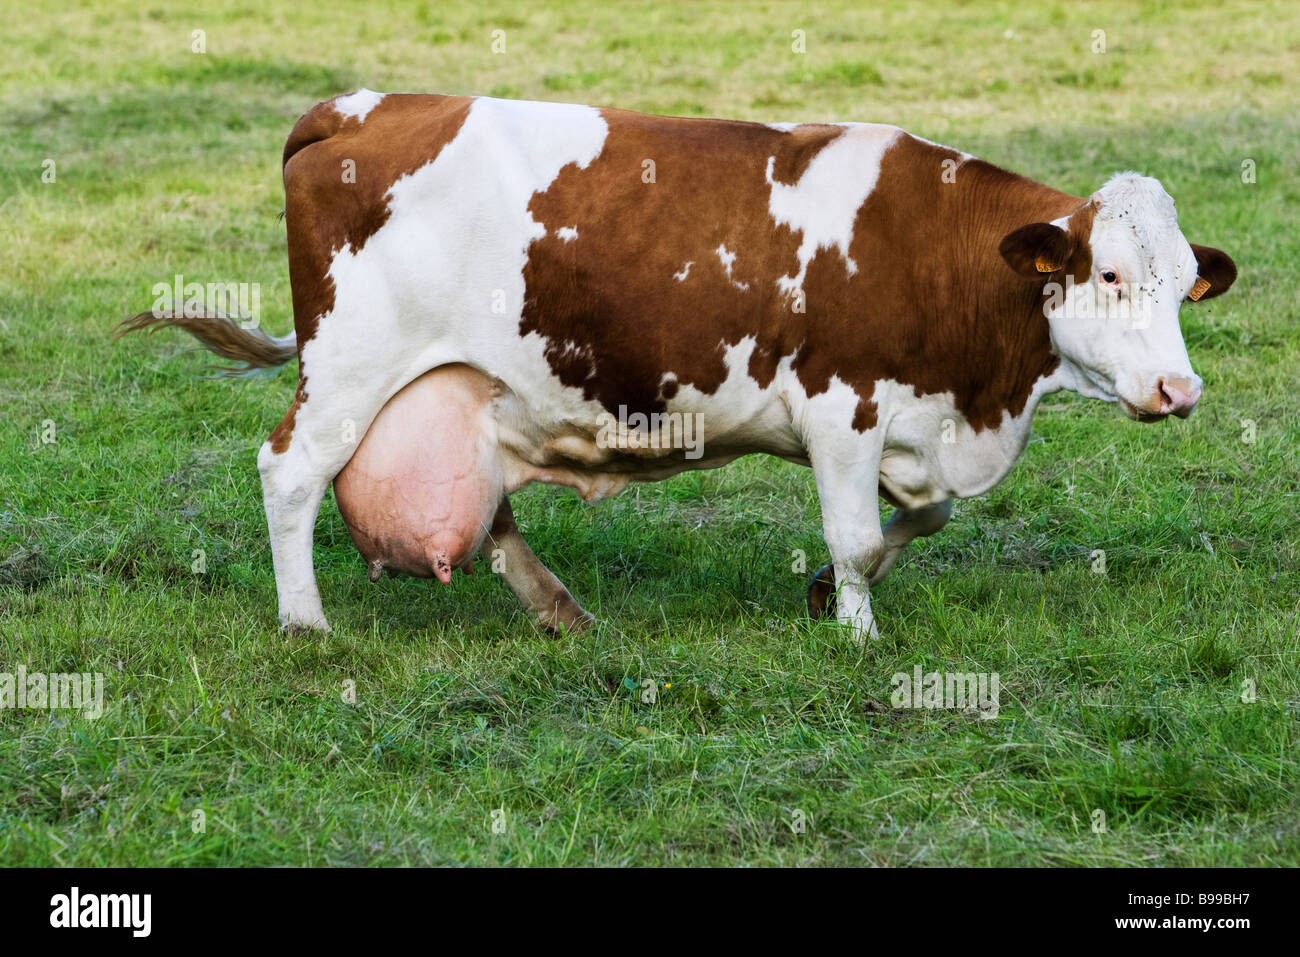 Montbeliard dairy cow, side view - Stock Image